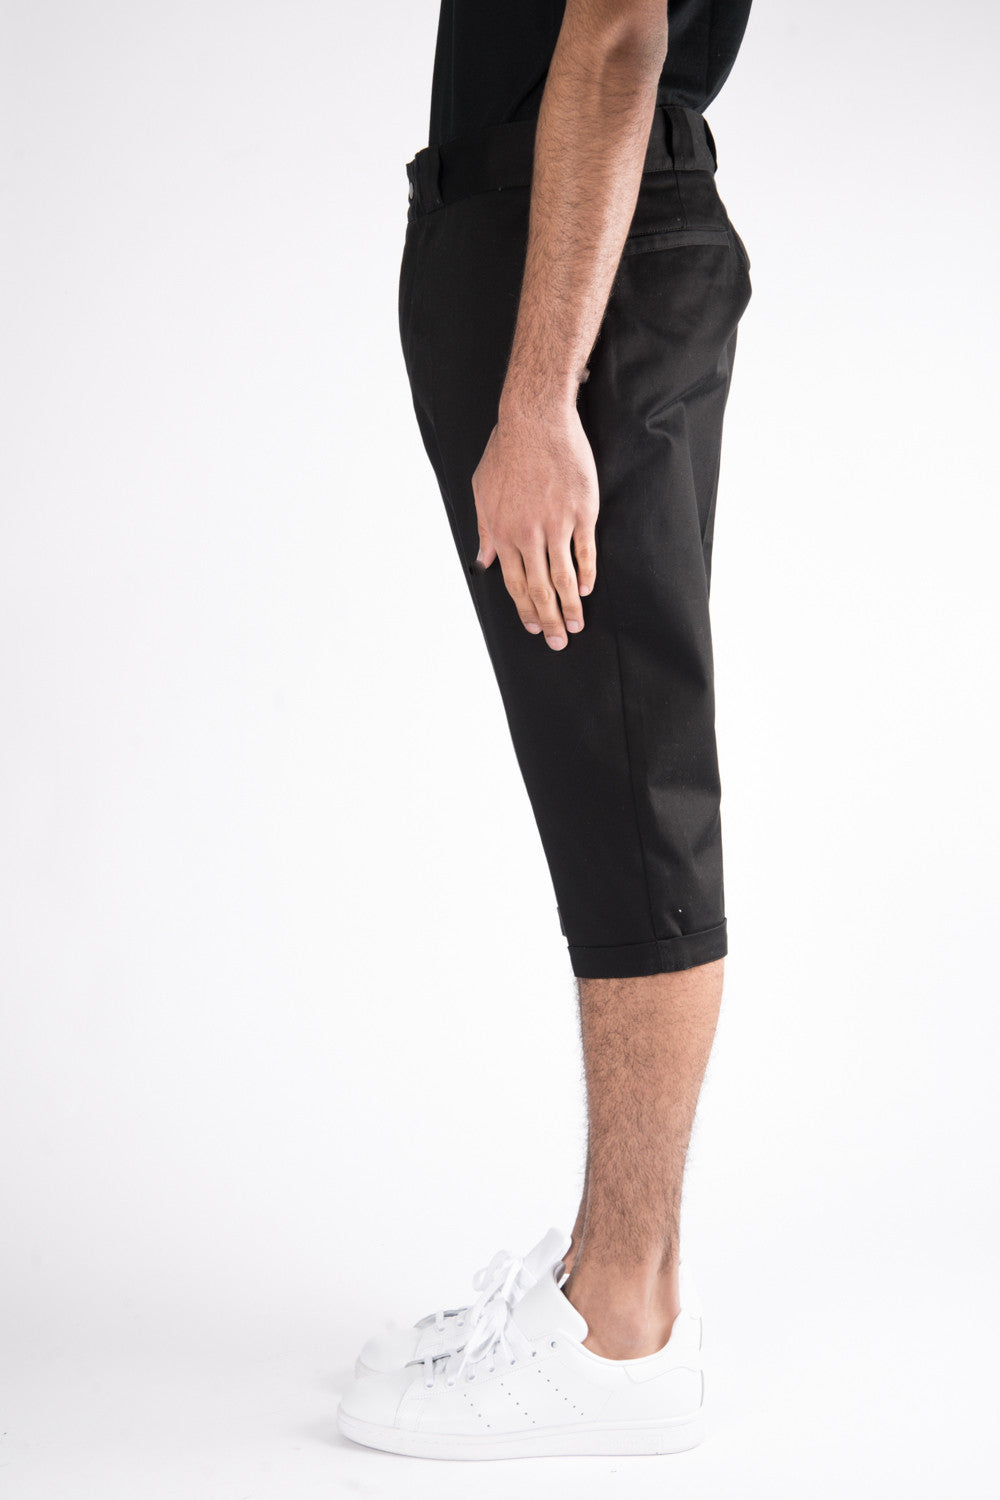 Herman Market Cropped Cotton Work Pant In Black